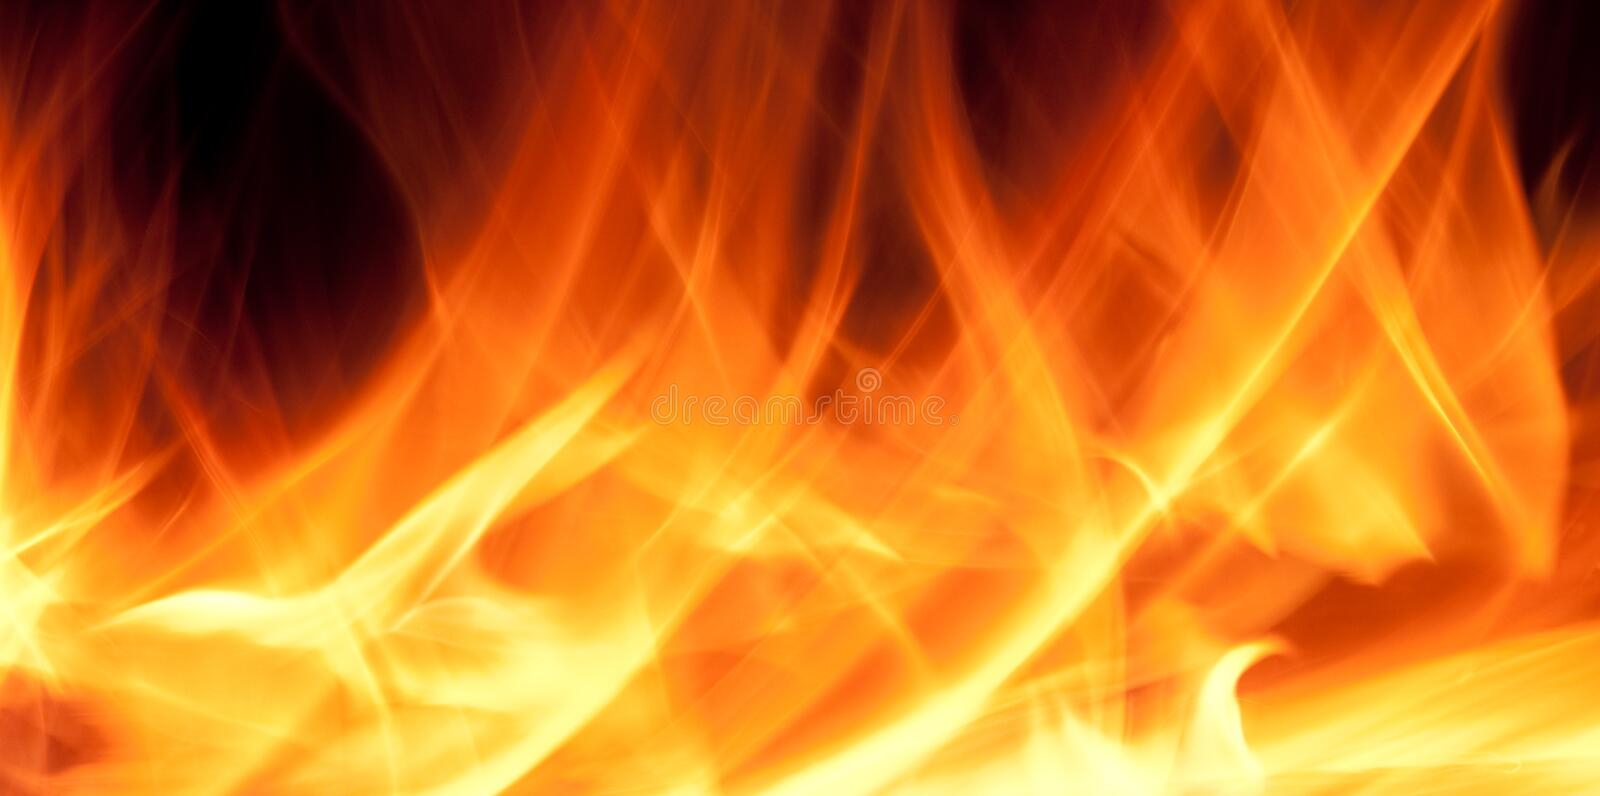 Download Fire Background stock image. Image of abstract, white - 10719267